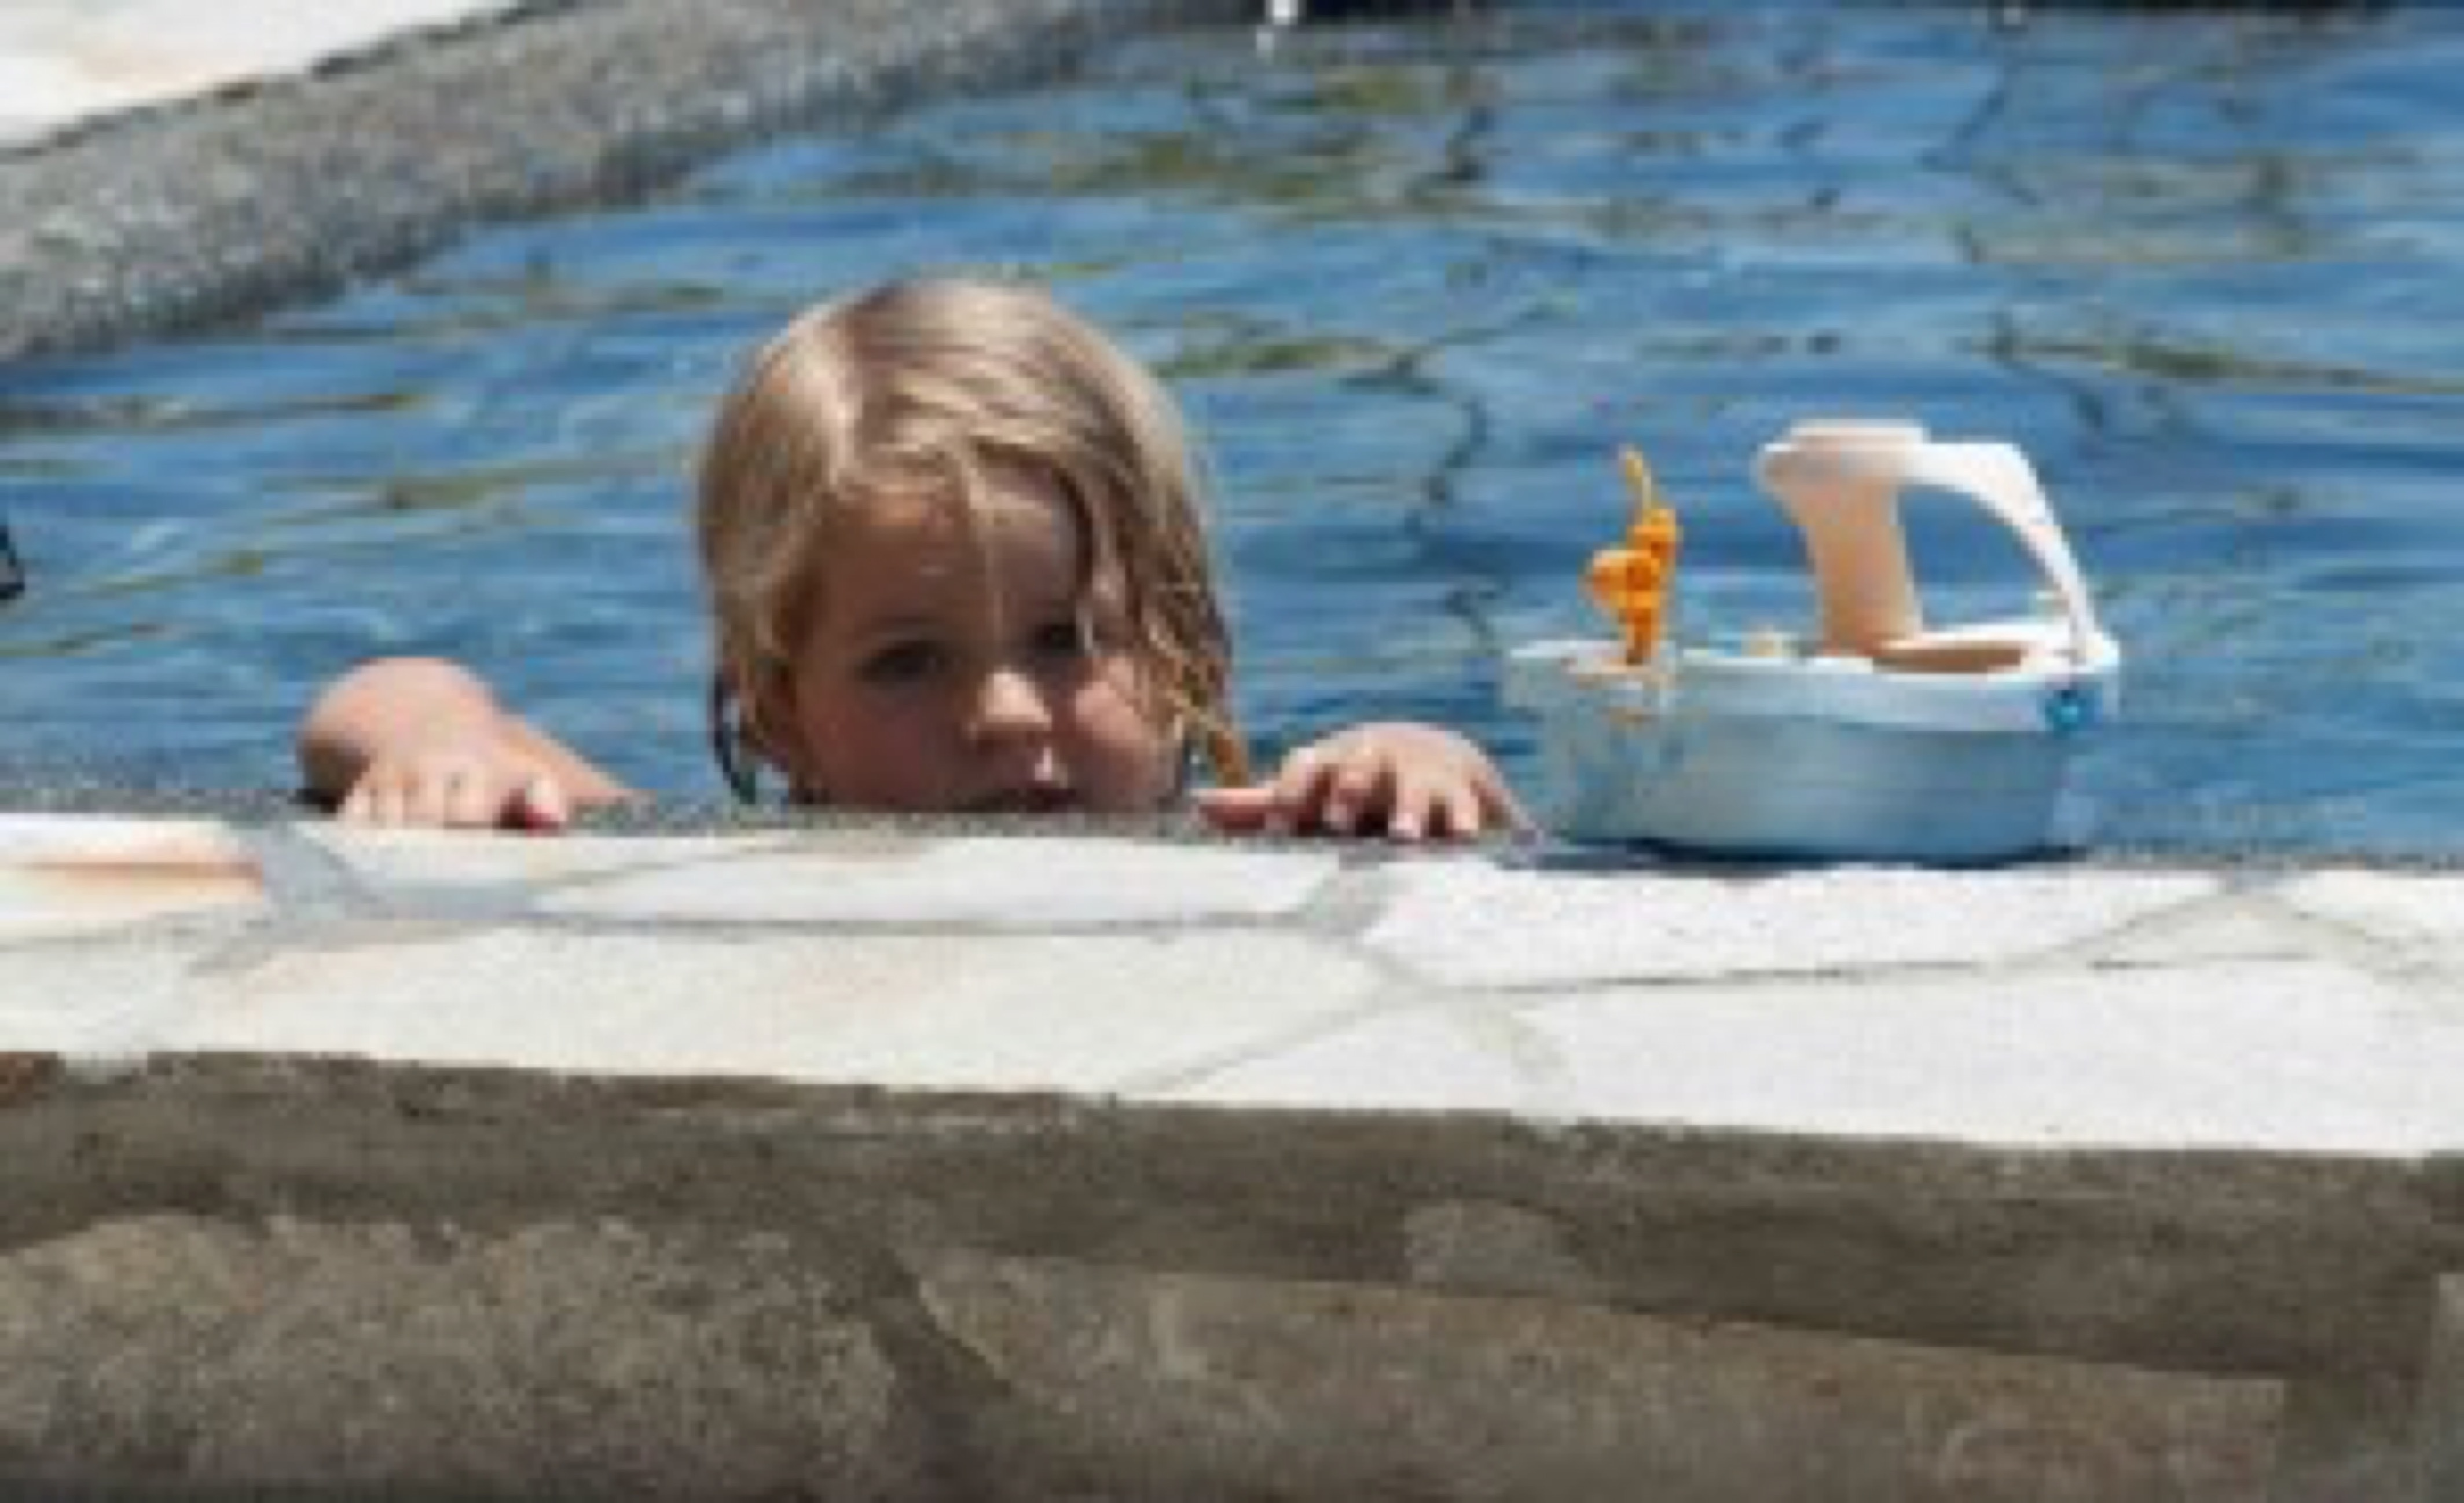 blog image - child in pool